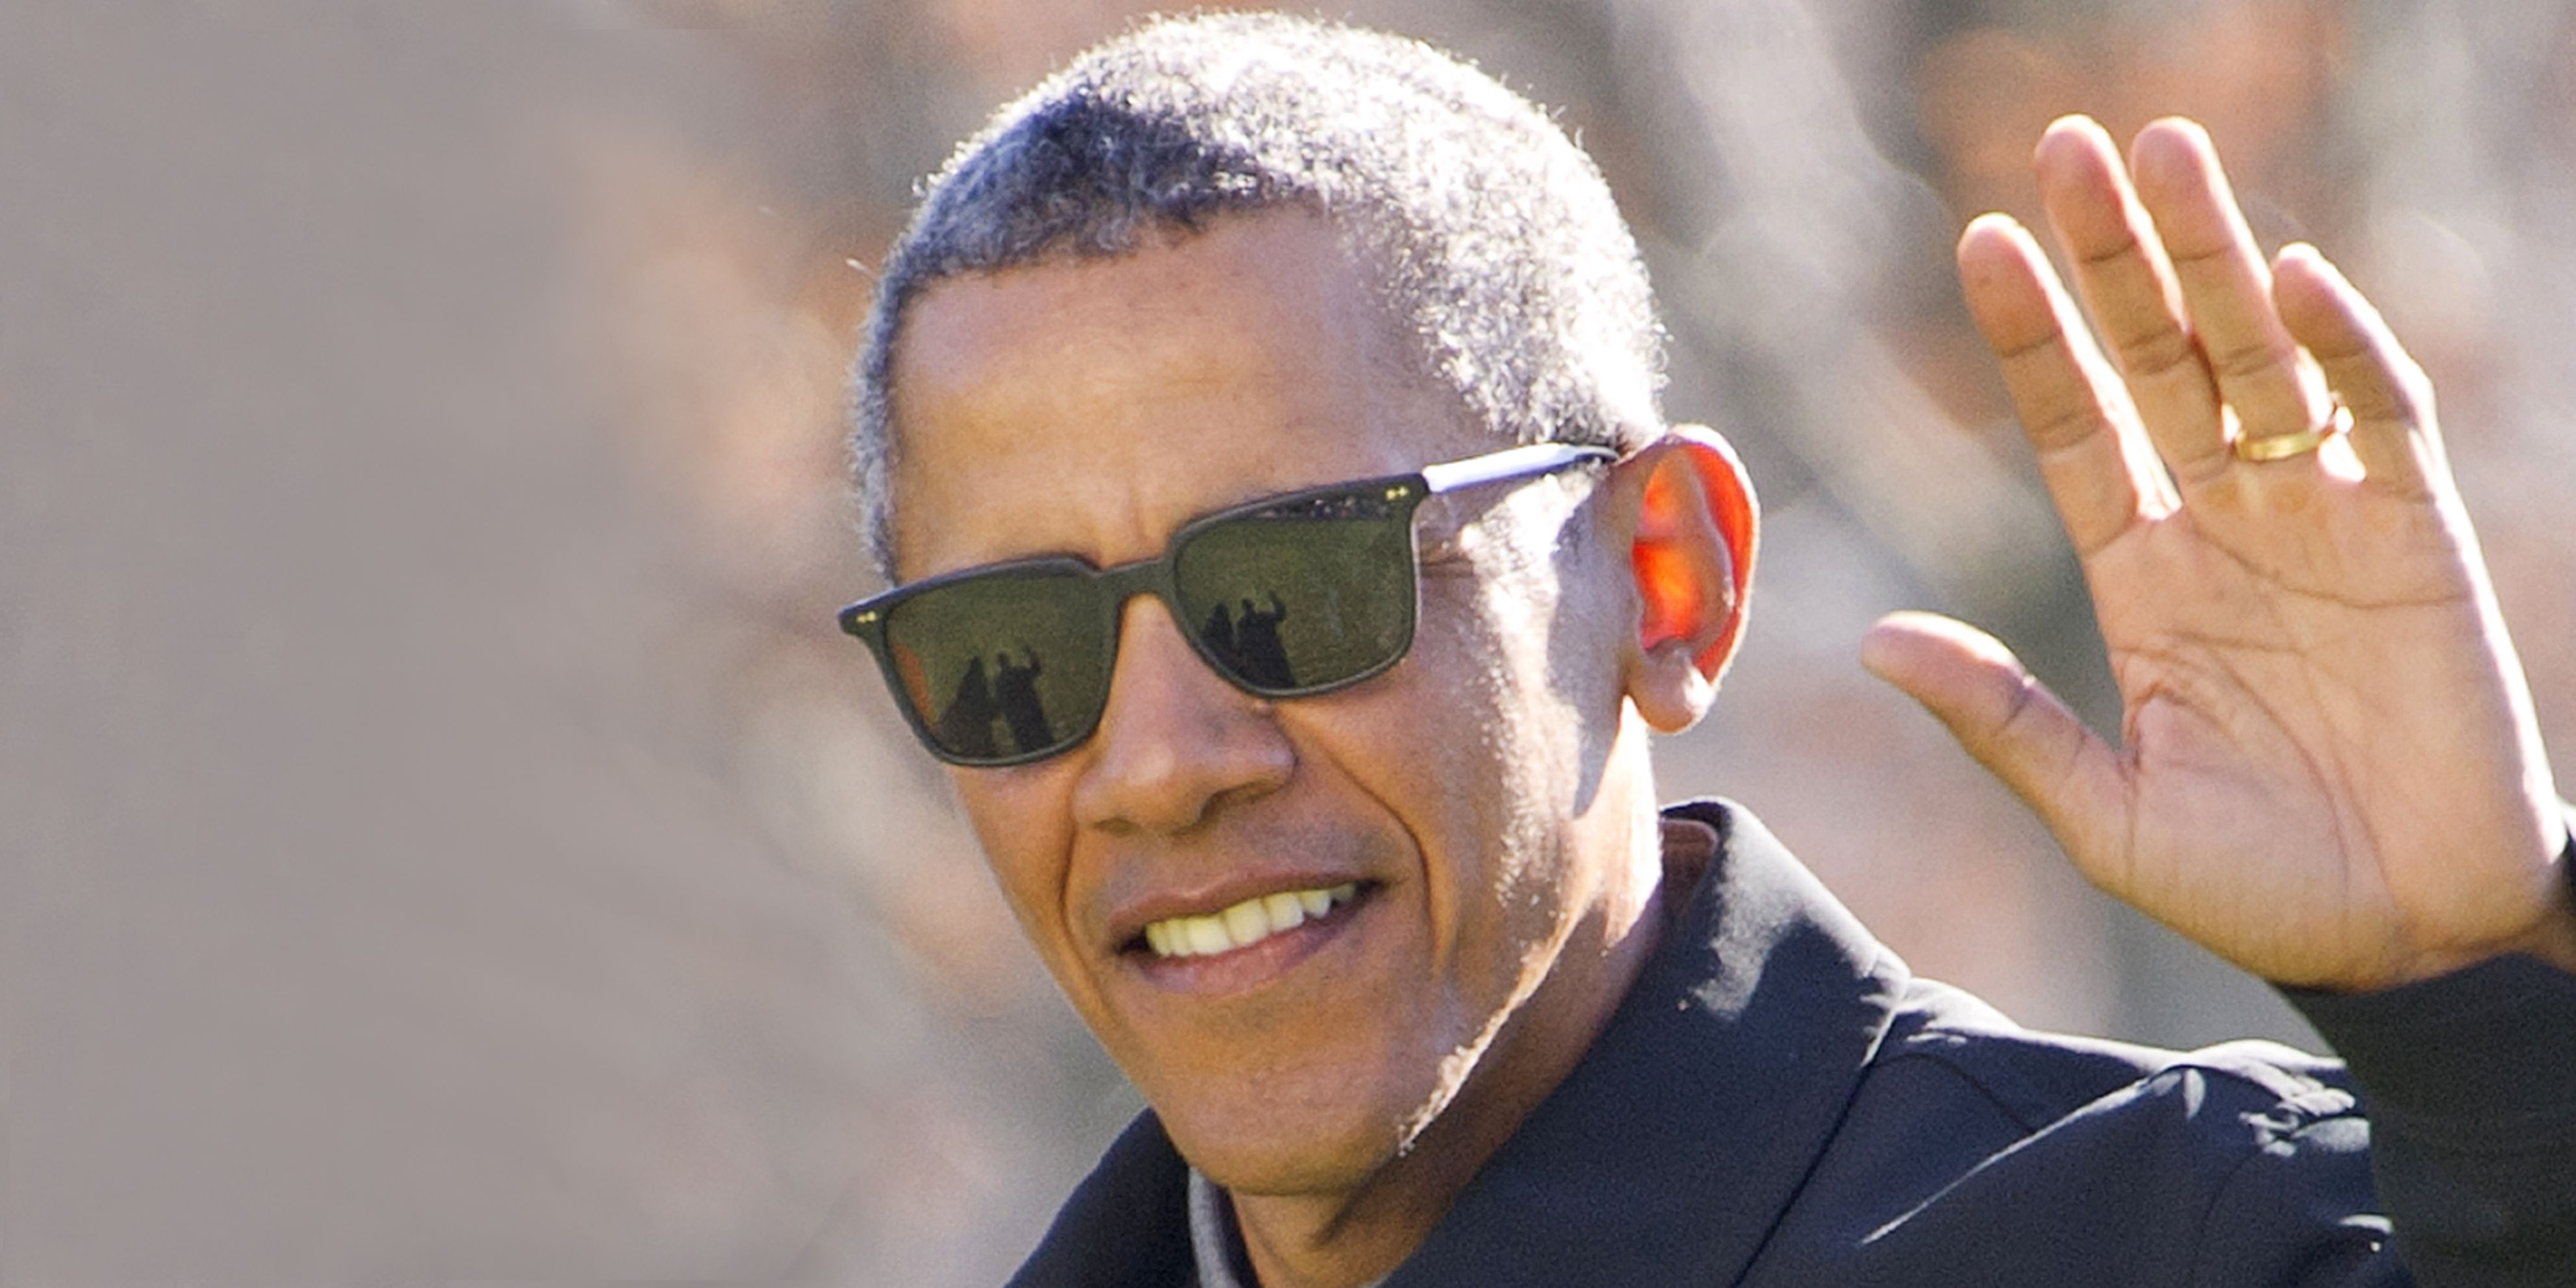 You Too Can Have Sunglasses Like President Obama's